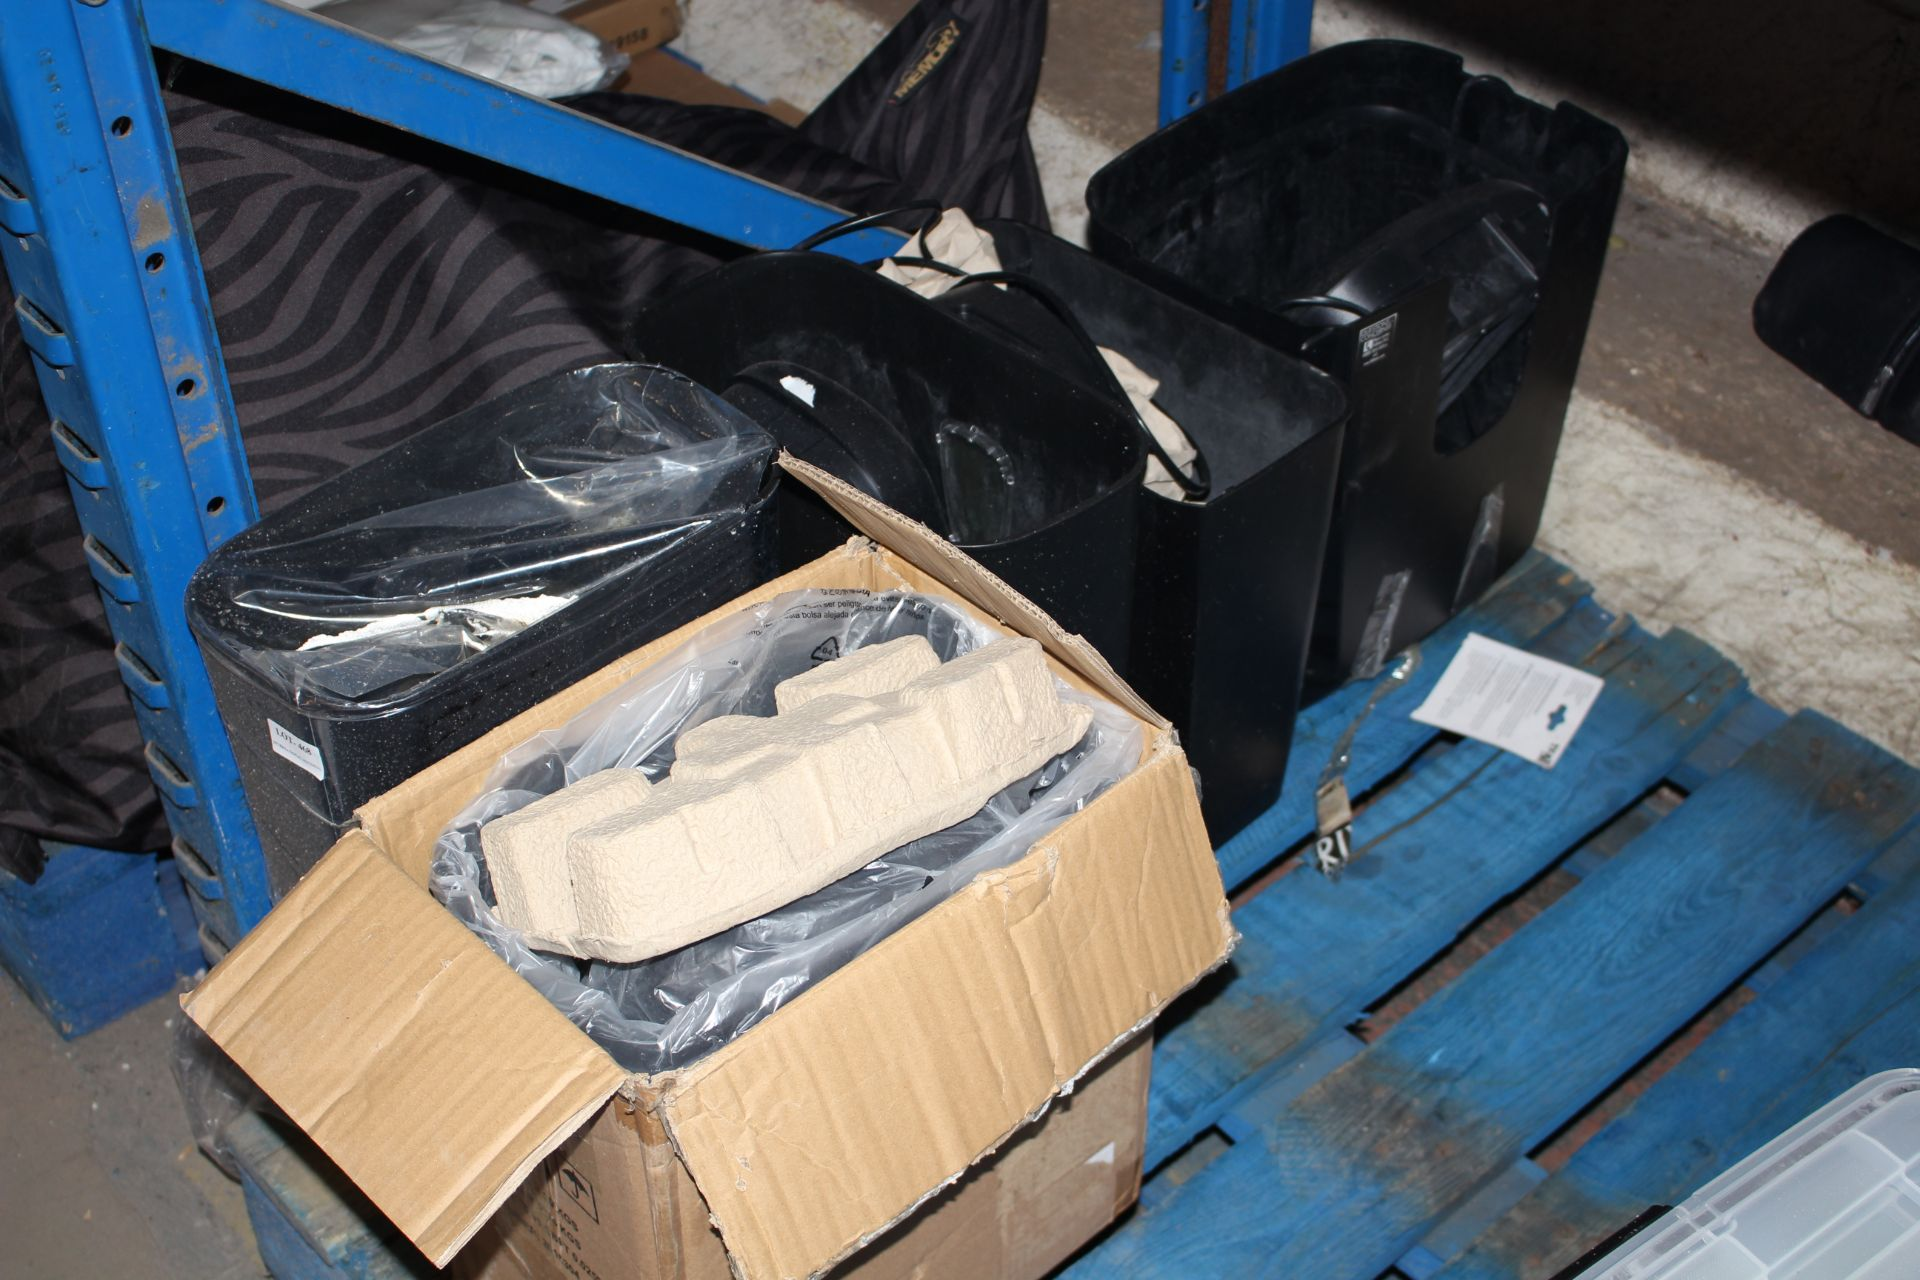 X5 UNBOXED SHREDDERS, PLEASE USE IMAGE AS A GUIDECondition ReportAppraisal Available on Request- All